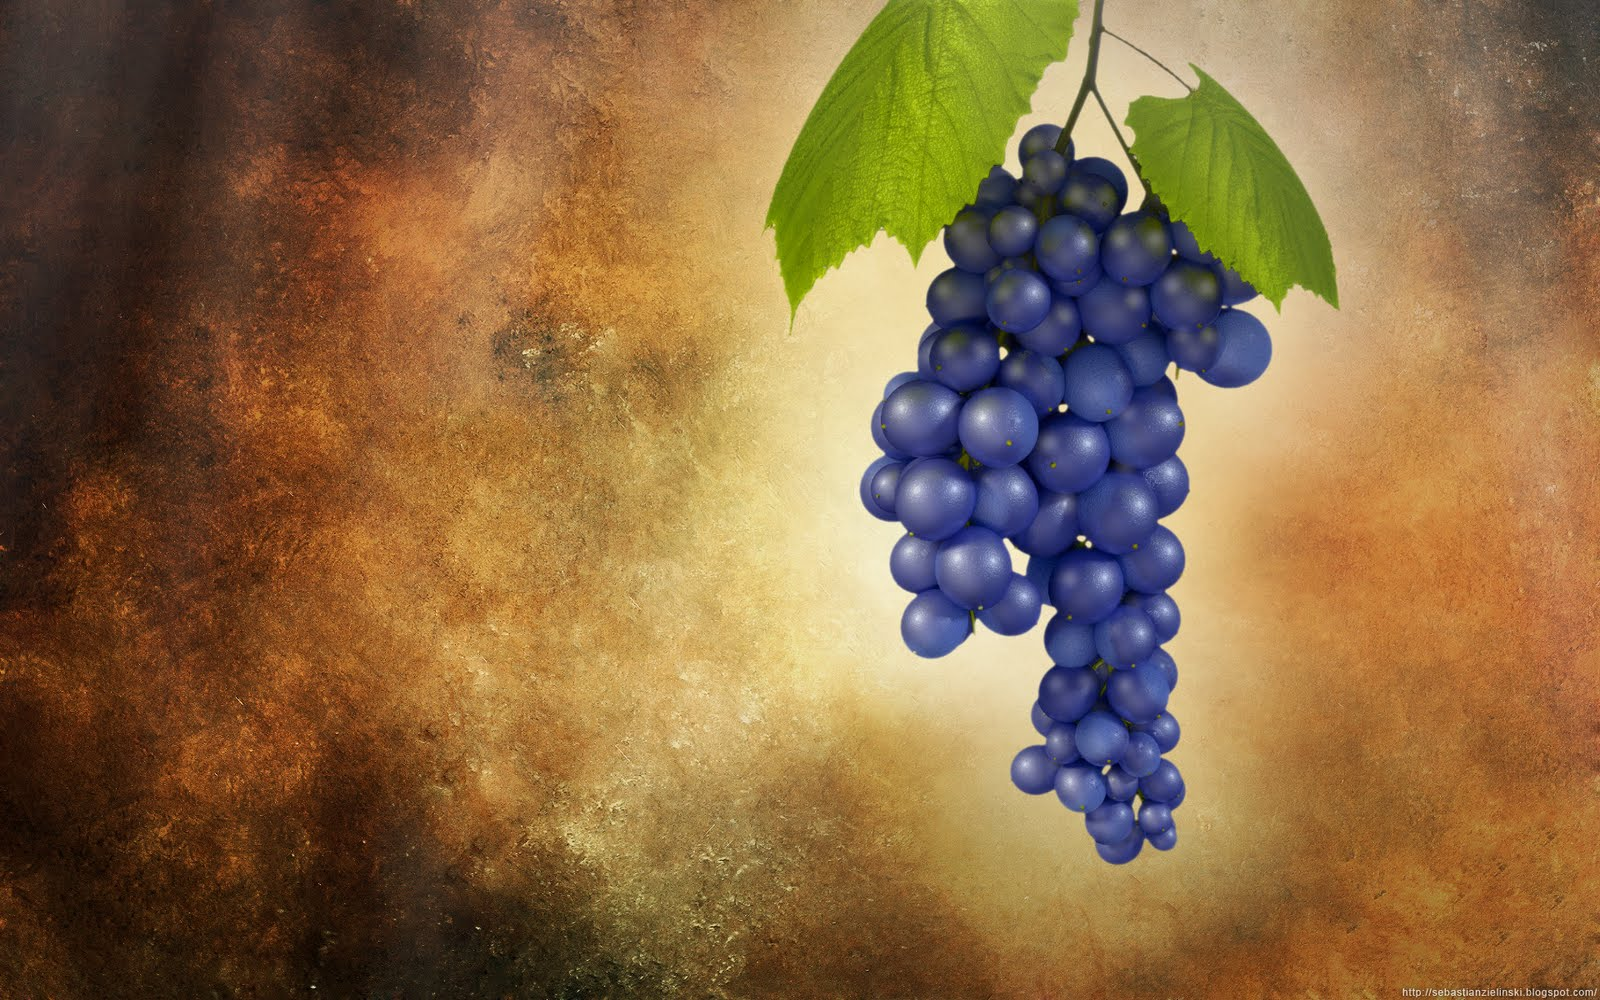 grapes wallpaperjpg 1600x1000